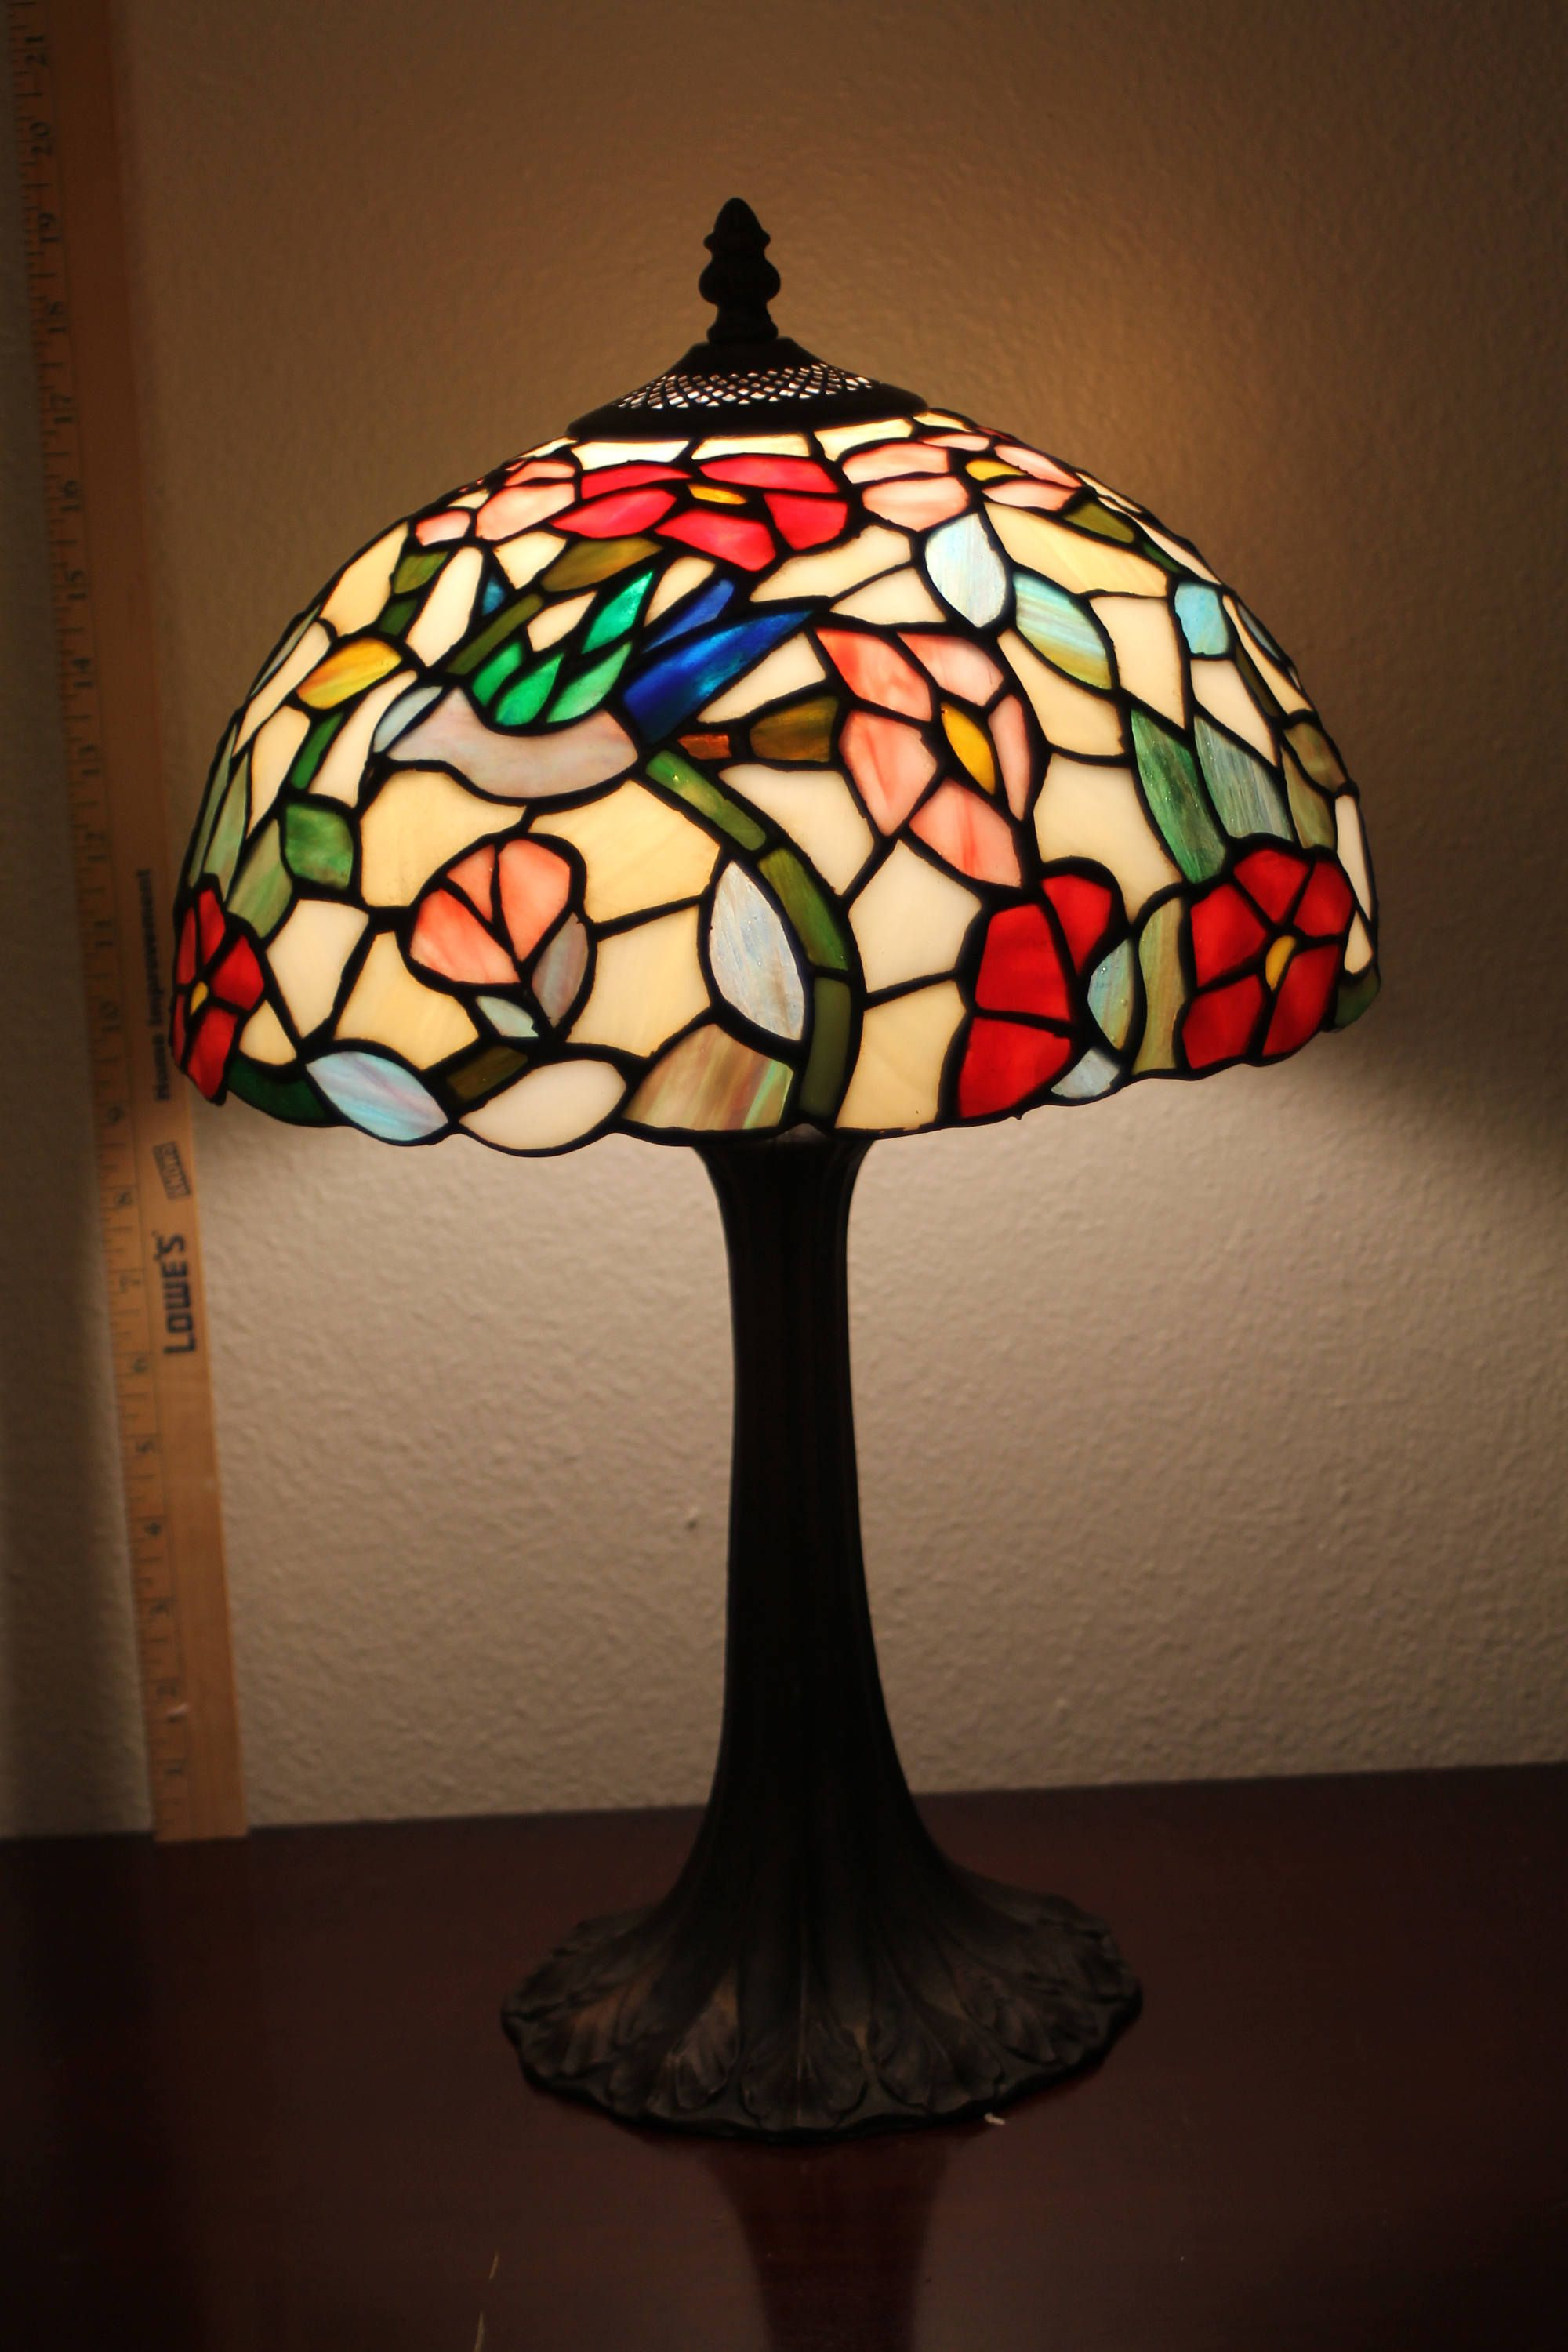 etsy lamps glass stained fan product copy goldfish table lamp